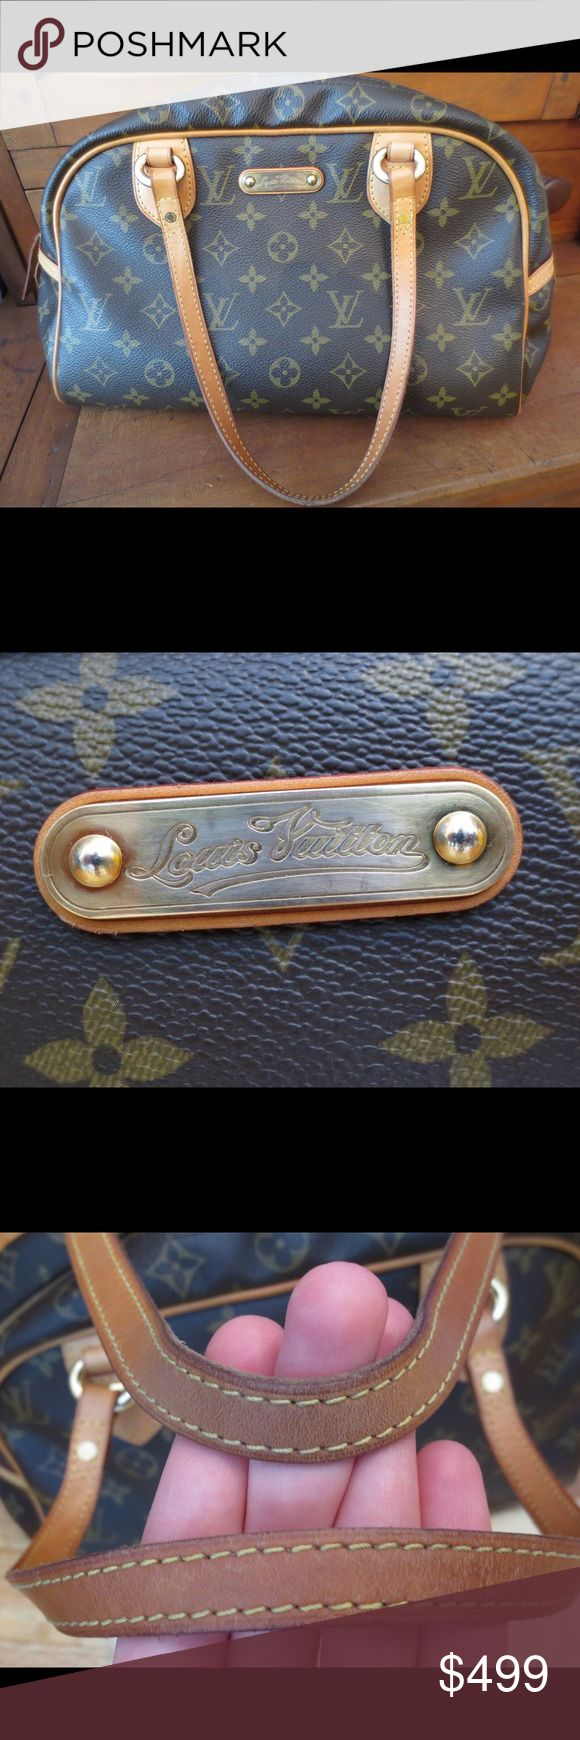 Louis Vuitton Montorgueil Pm Monty Monogram SP4009 Made in France, comes with dustbag and tag. Corners scuffed, name plate scuffed, patina, minor pen marks on interior, wear to handles Louis Vuitton Bags Shoulder Bags